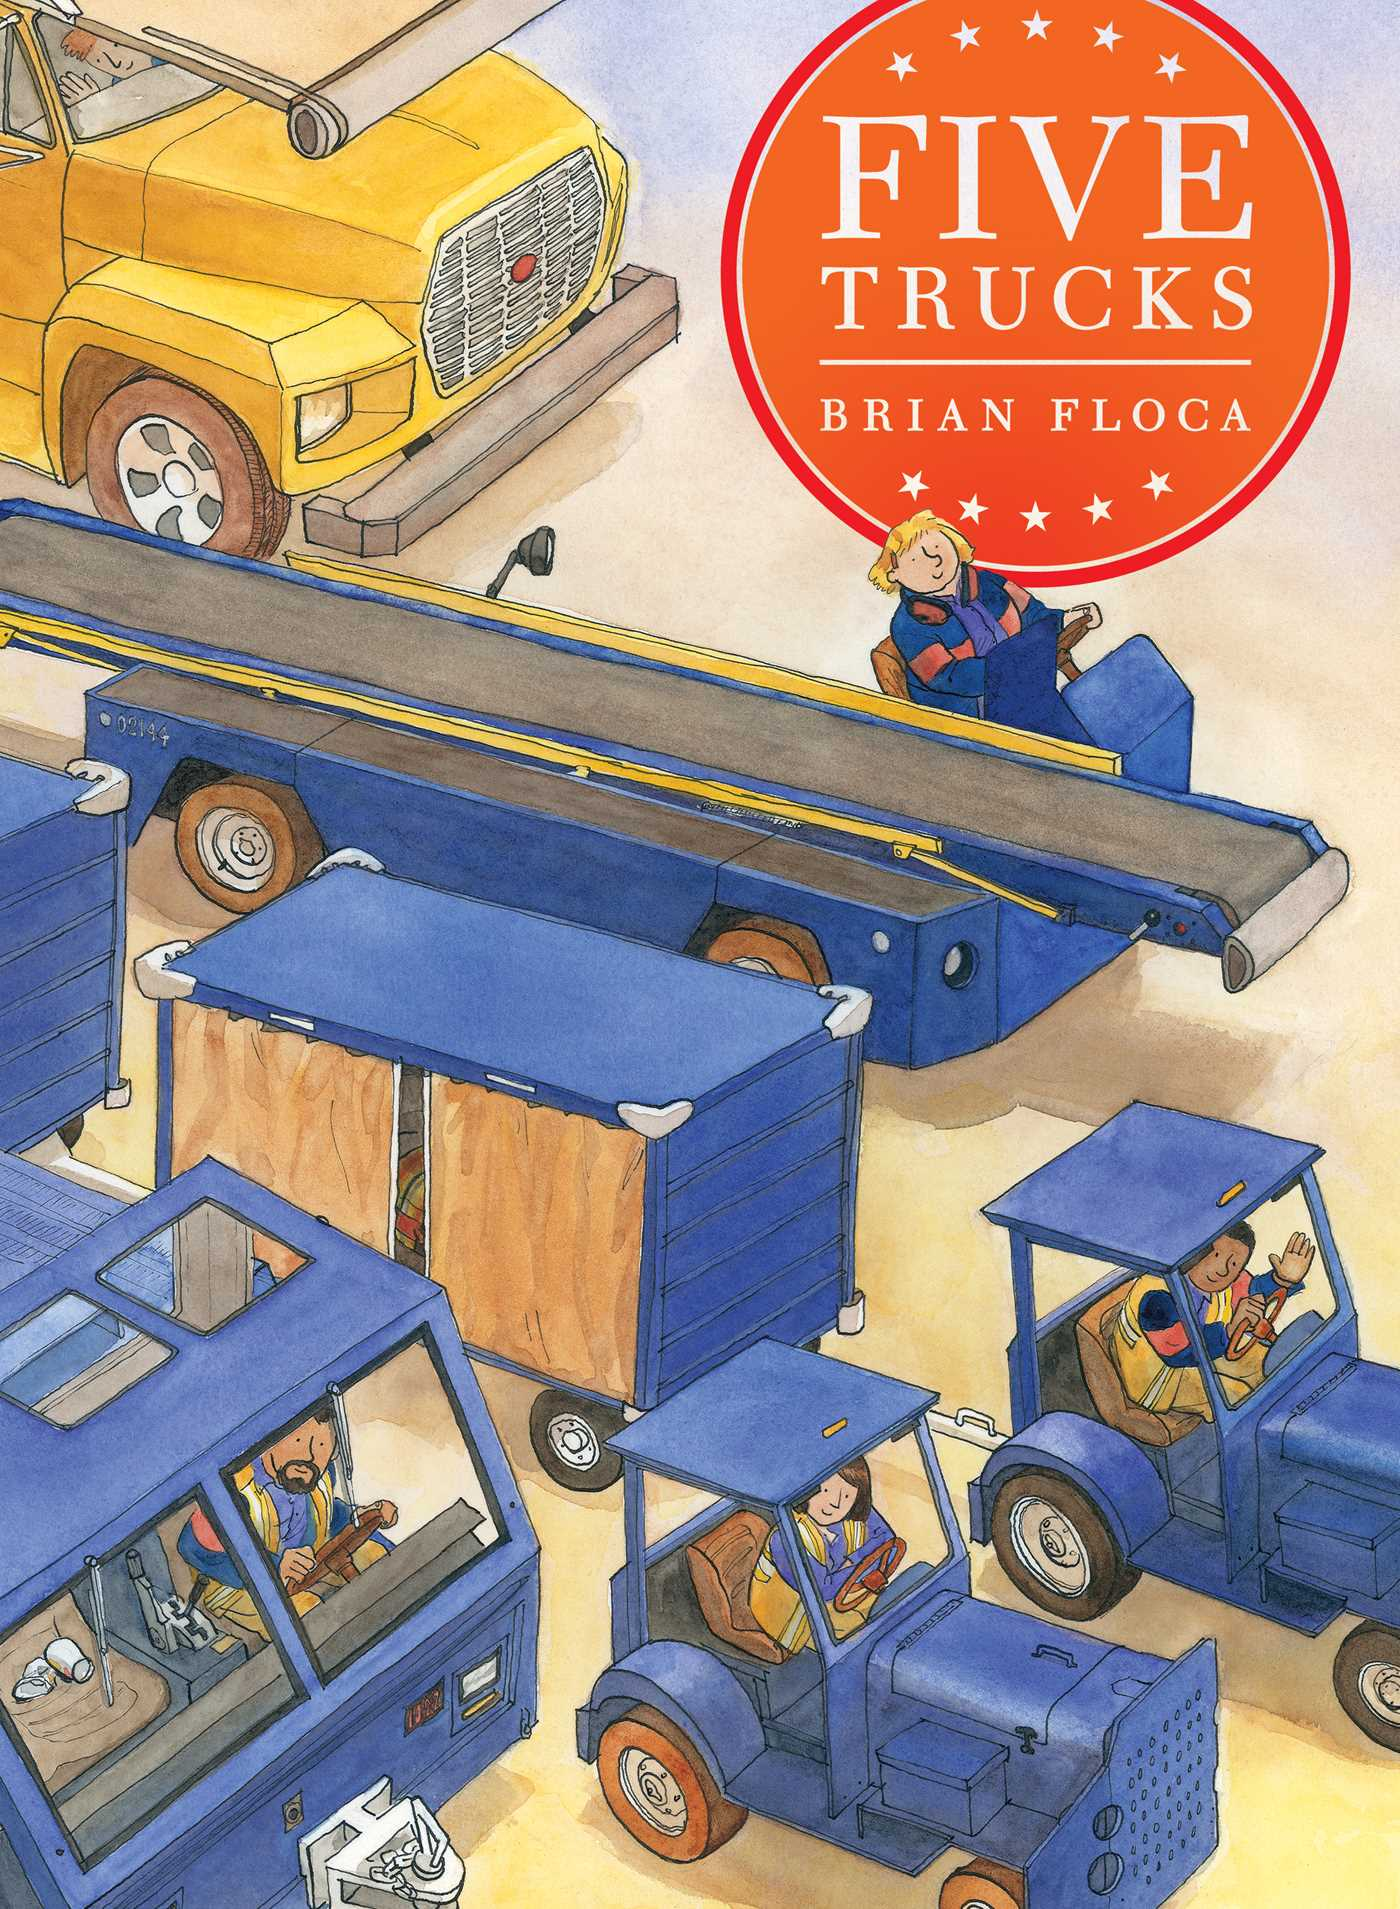 Five-trucks-9781481405942_hr